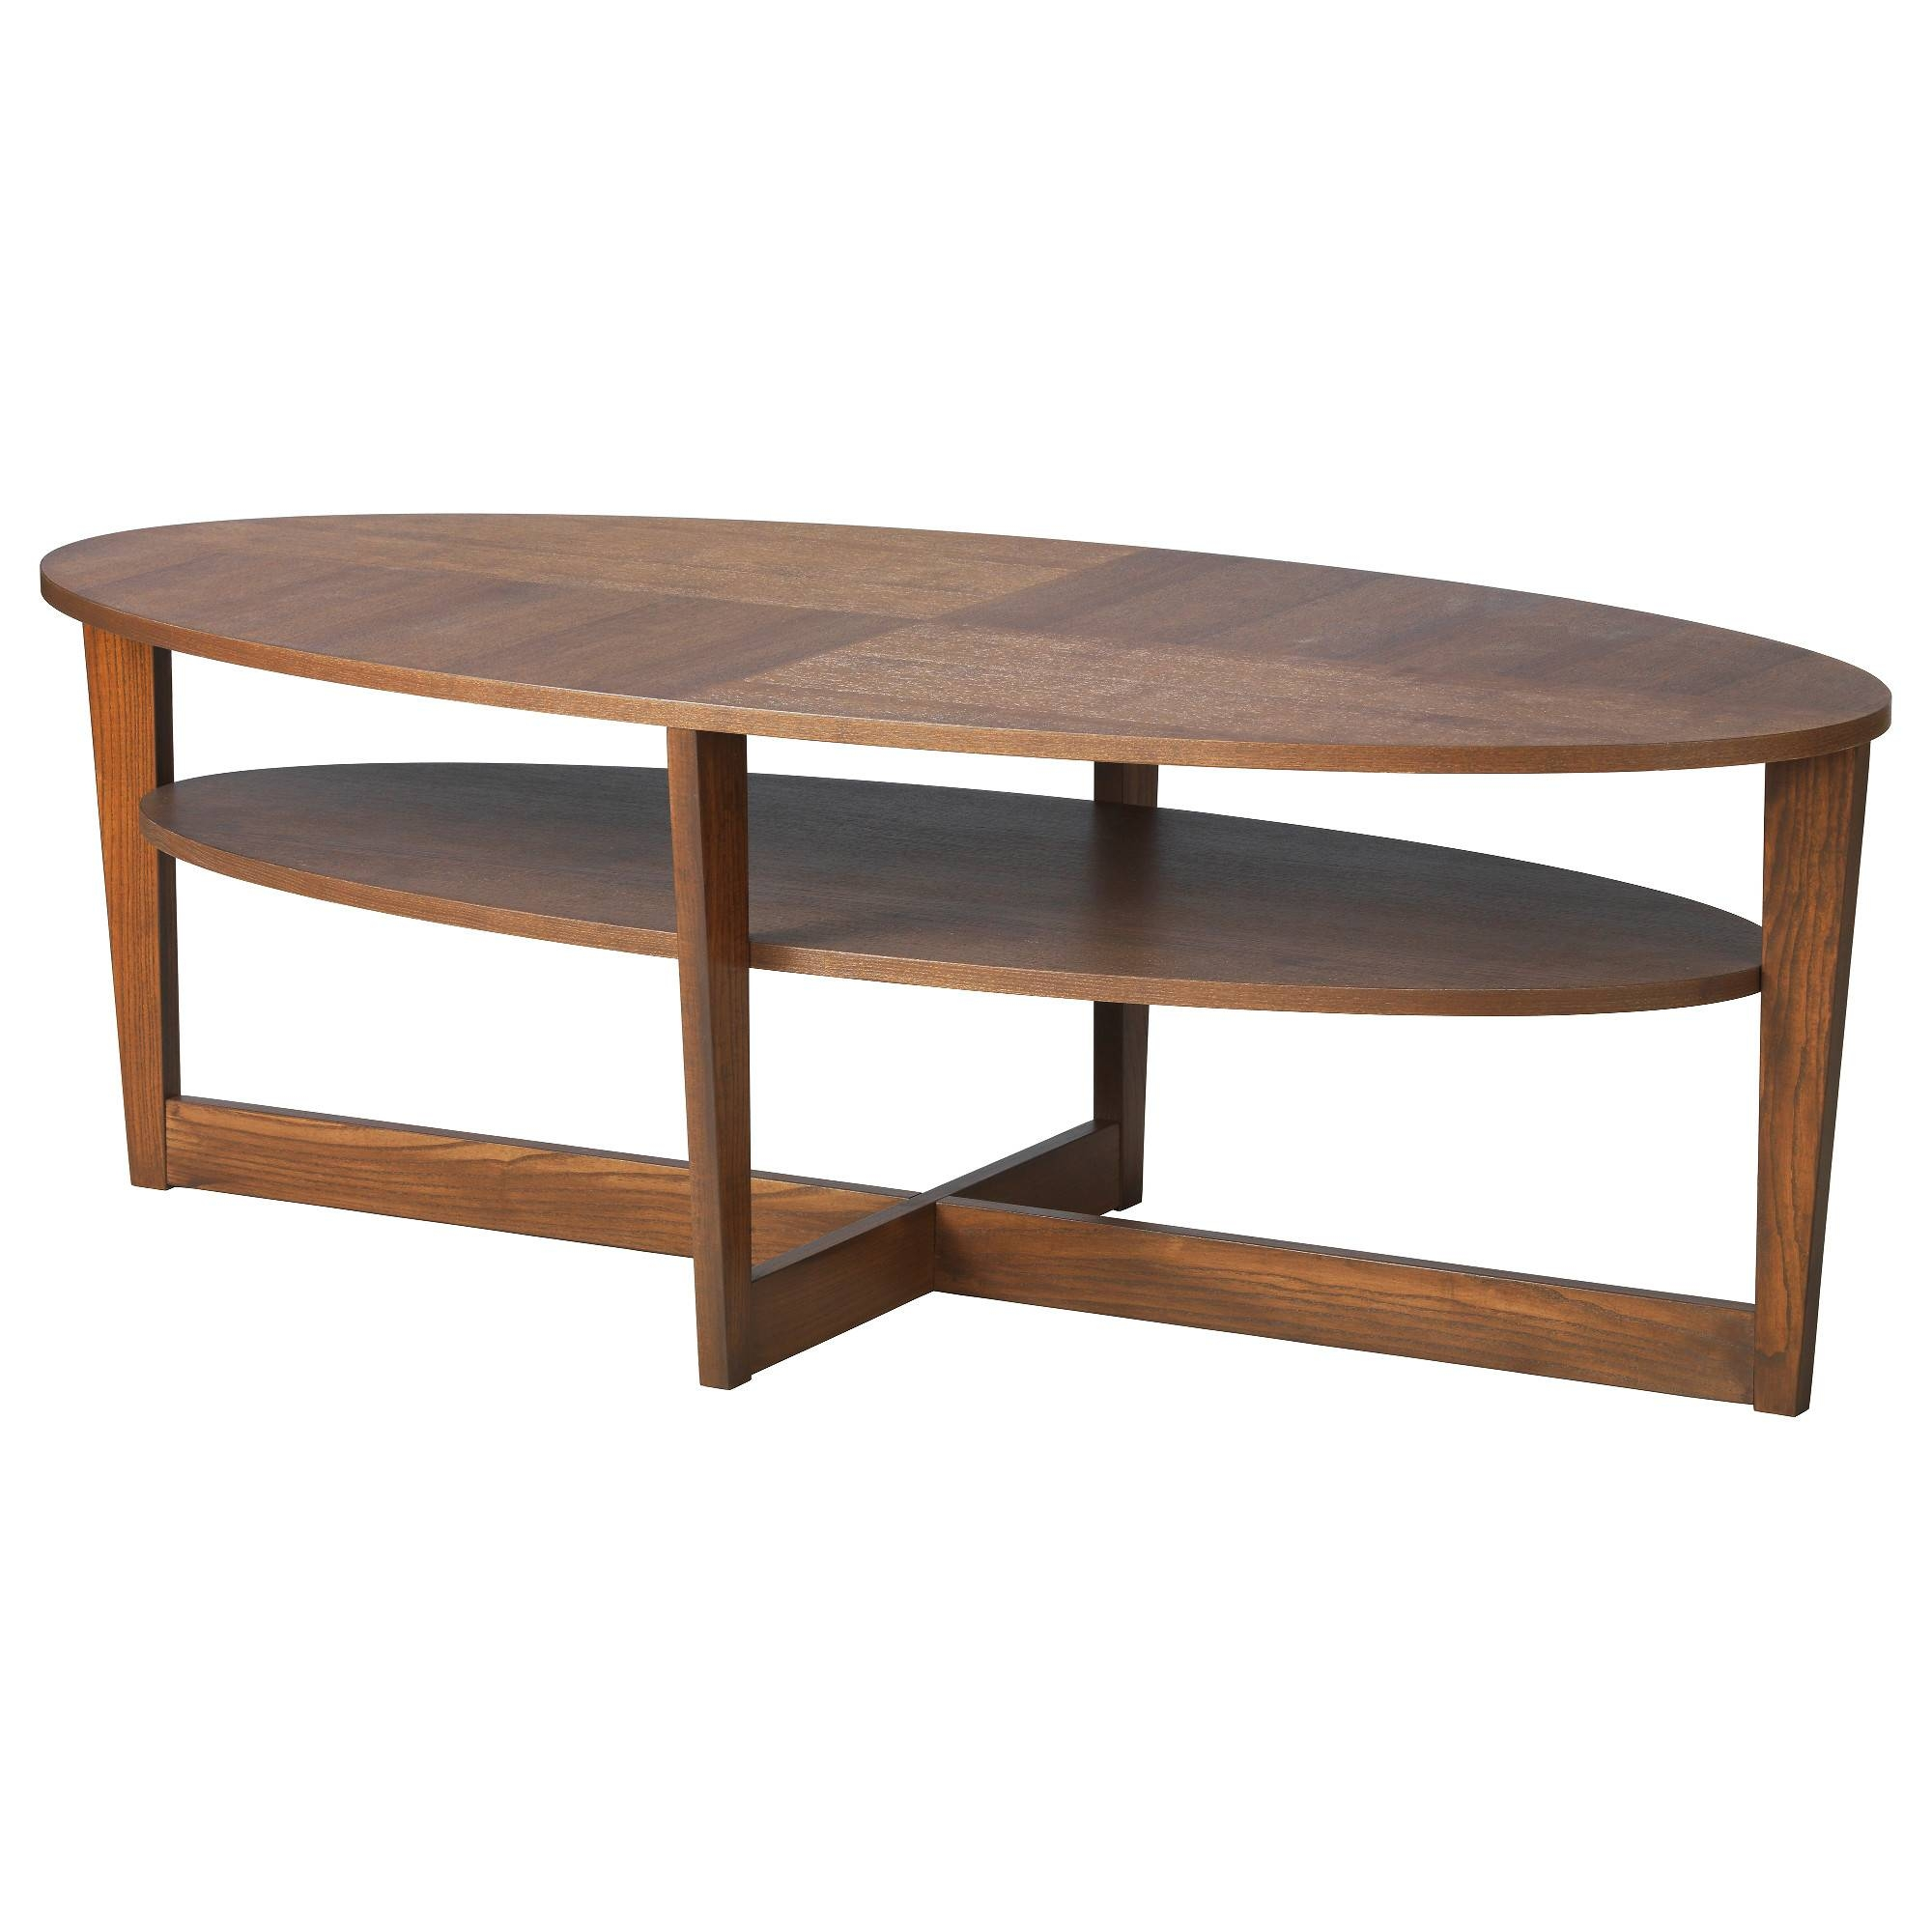 Vejmon Coffee Table - Brown - Ikea within Coffee Tables With Rounded Corners (Image 24 of 30)